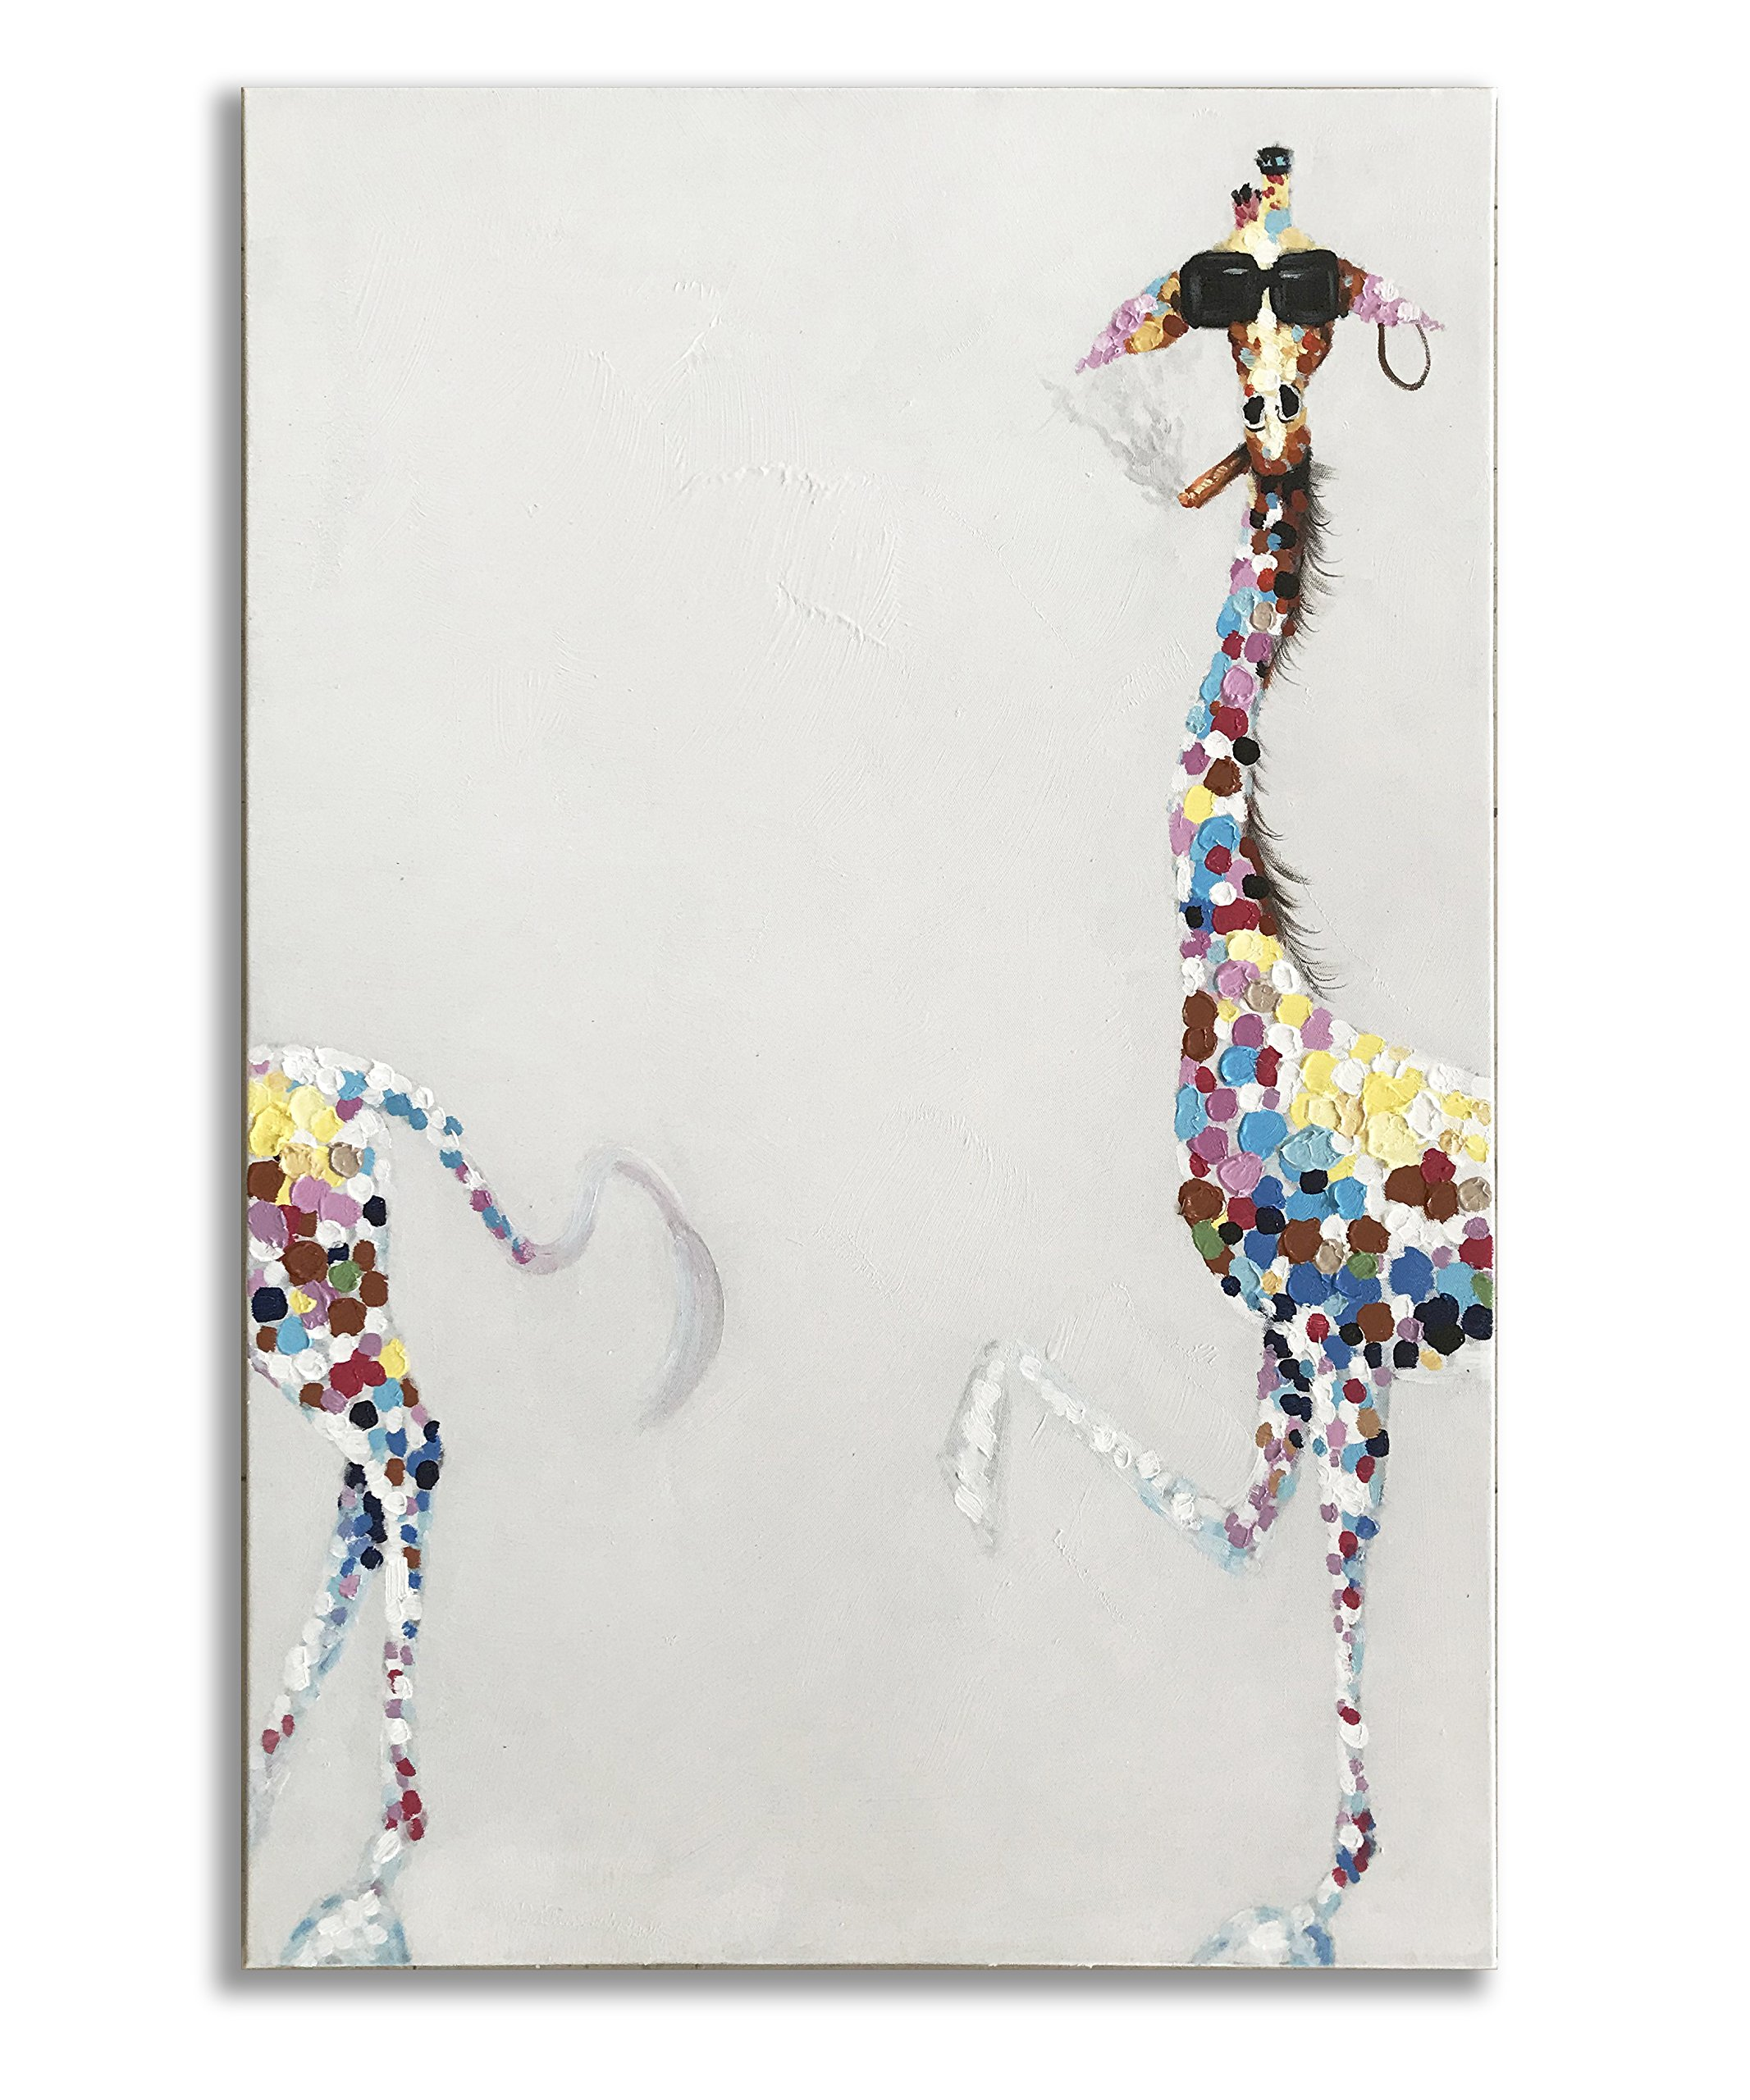 Giraffe Paintings, 100% Hand Painted Funny Animal Fashion Smoking Giraffe with Sunglasses Canvas Oil Painting Stretched and Framed Ready to Hang Living Room Bedroom Office Bathroom 24'' x36''